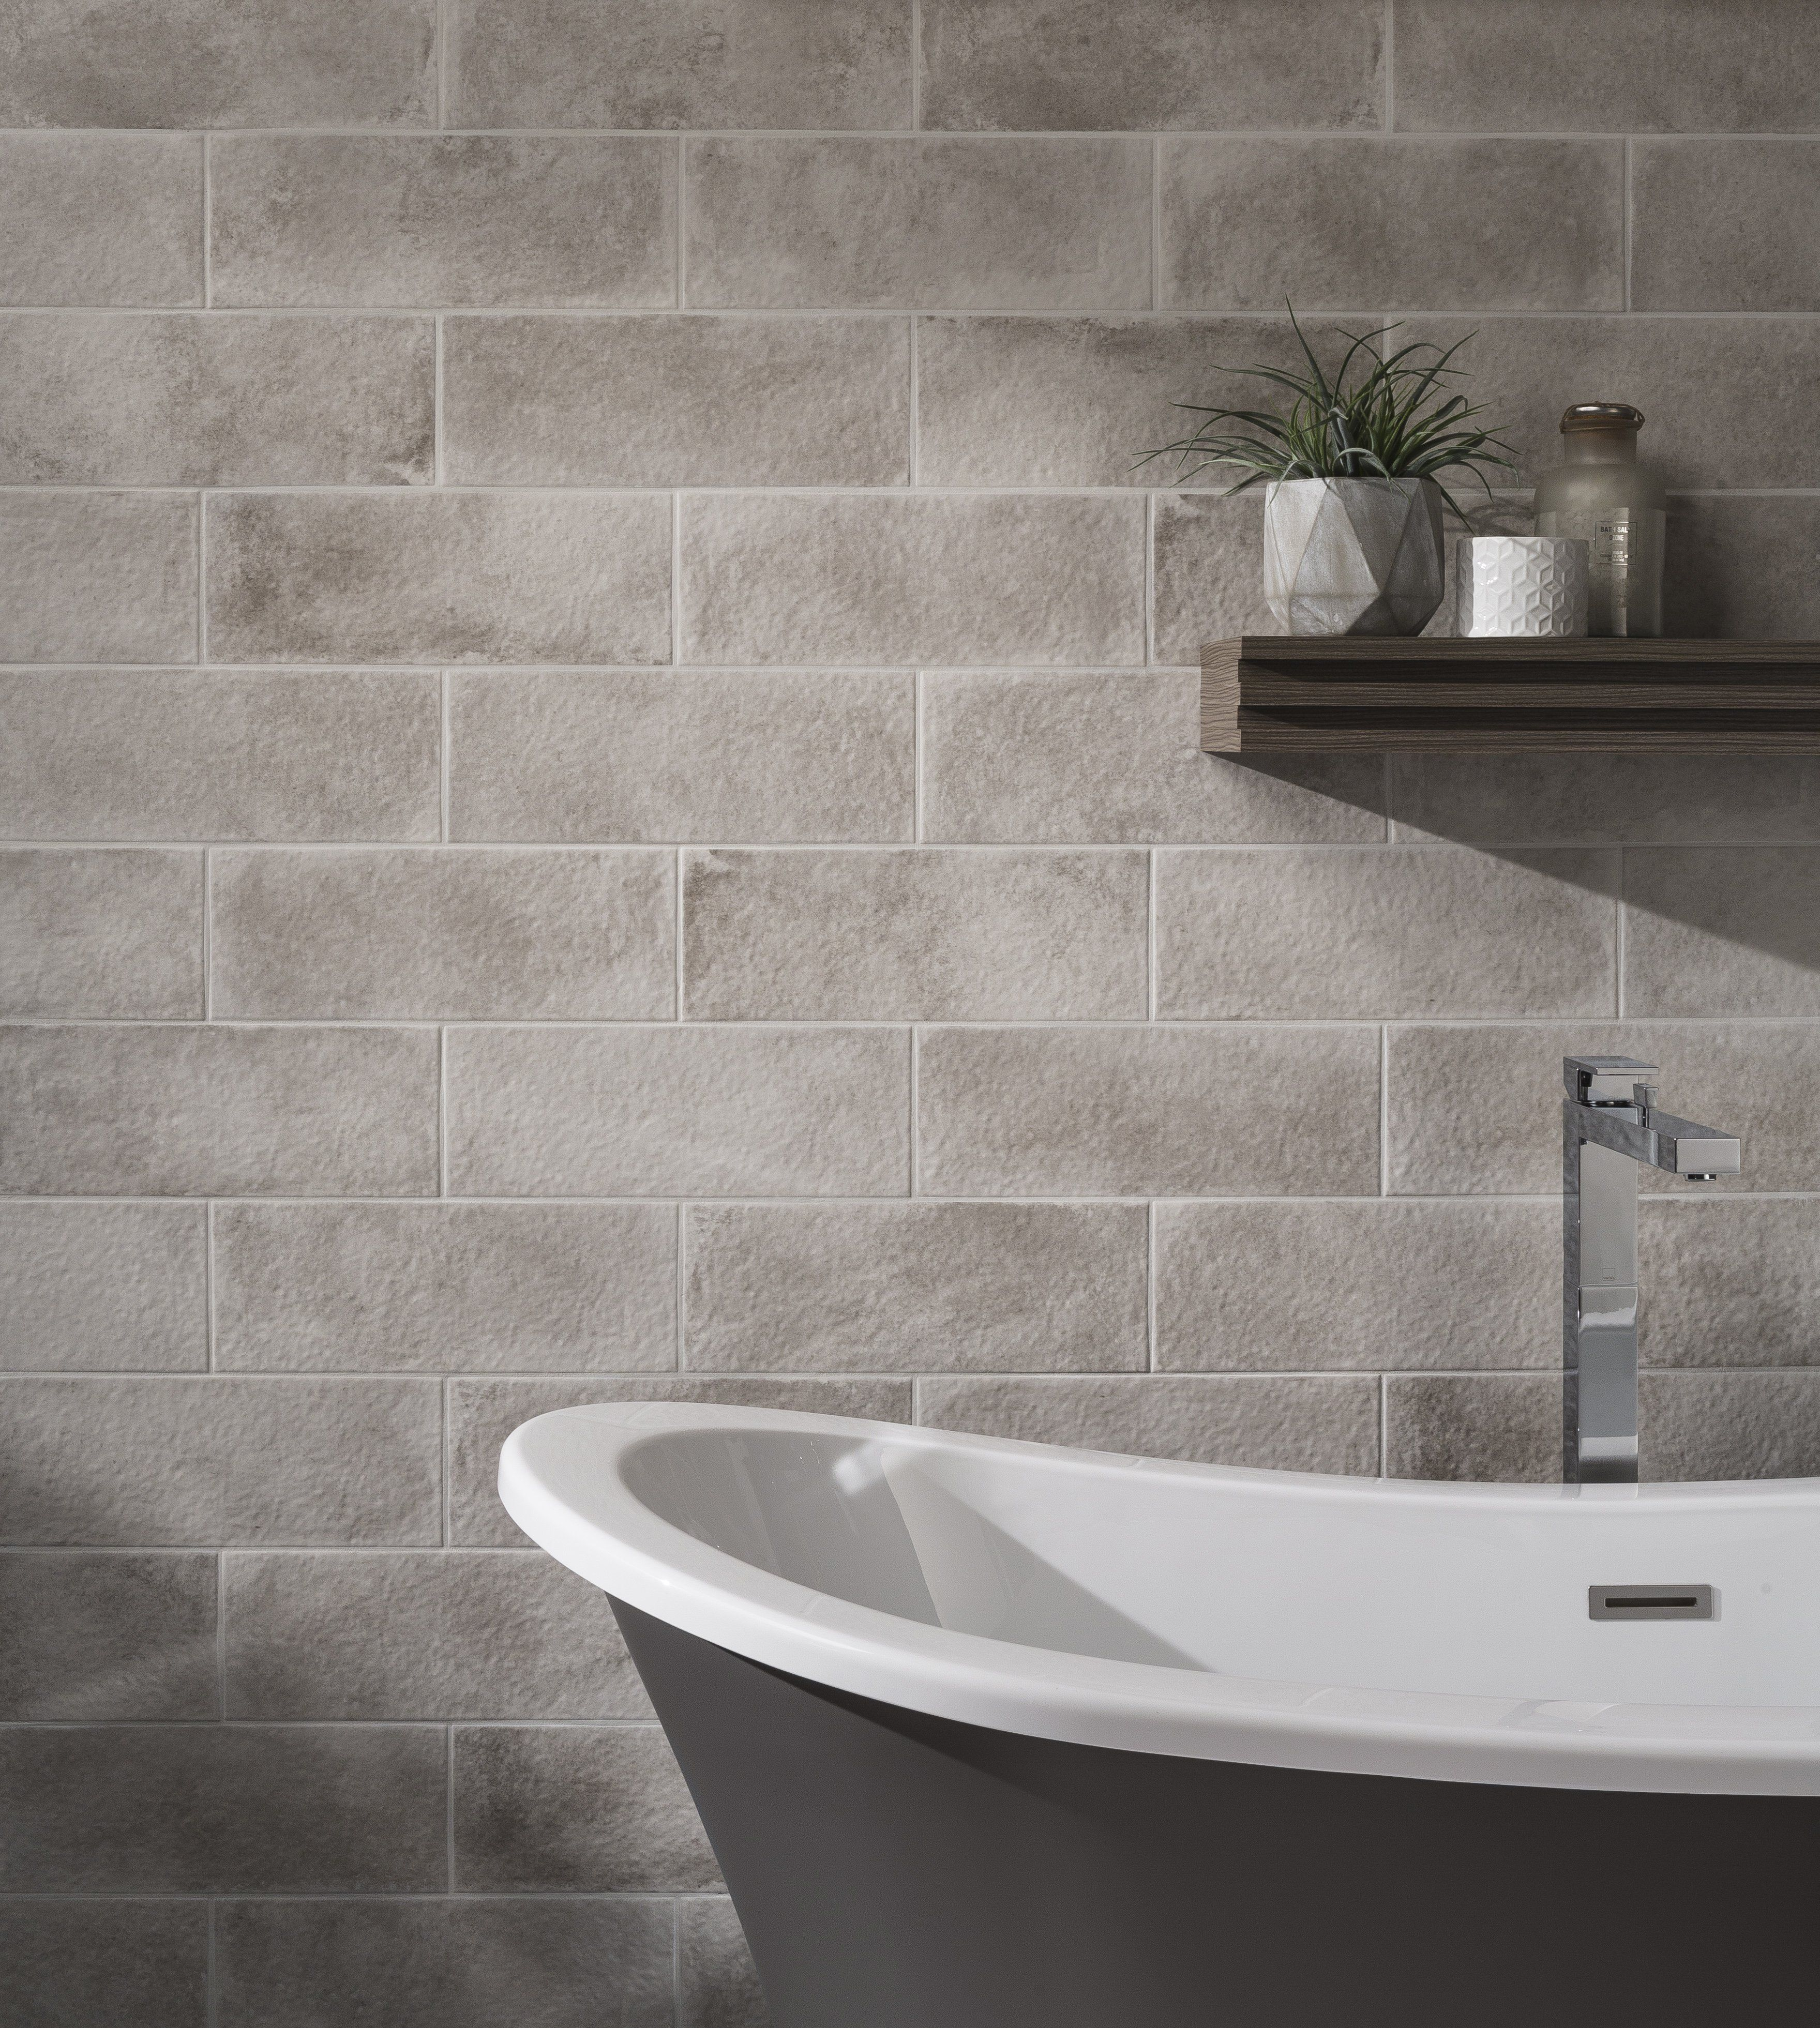 Johnson Tiles Harbour In Seaspray Johnsontiles Tiles Bathroomdesign Inspohome Design Deco Shower Wall Tile Bathroom Wall Tile Bathroom Tile Designs